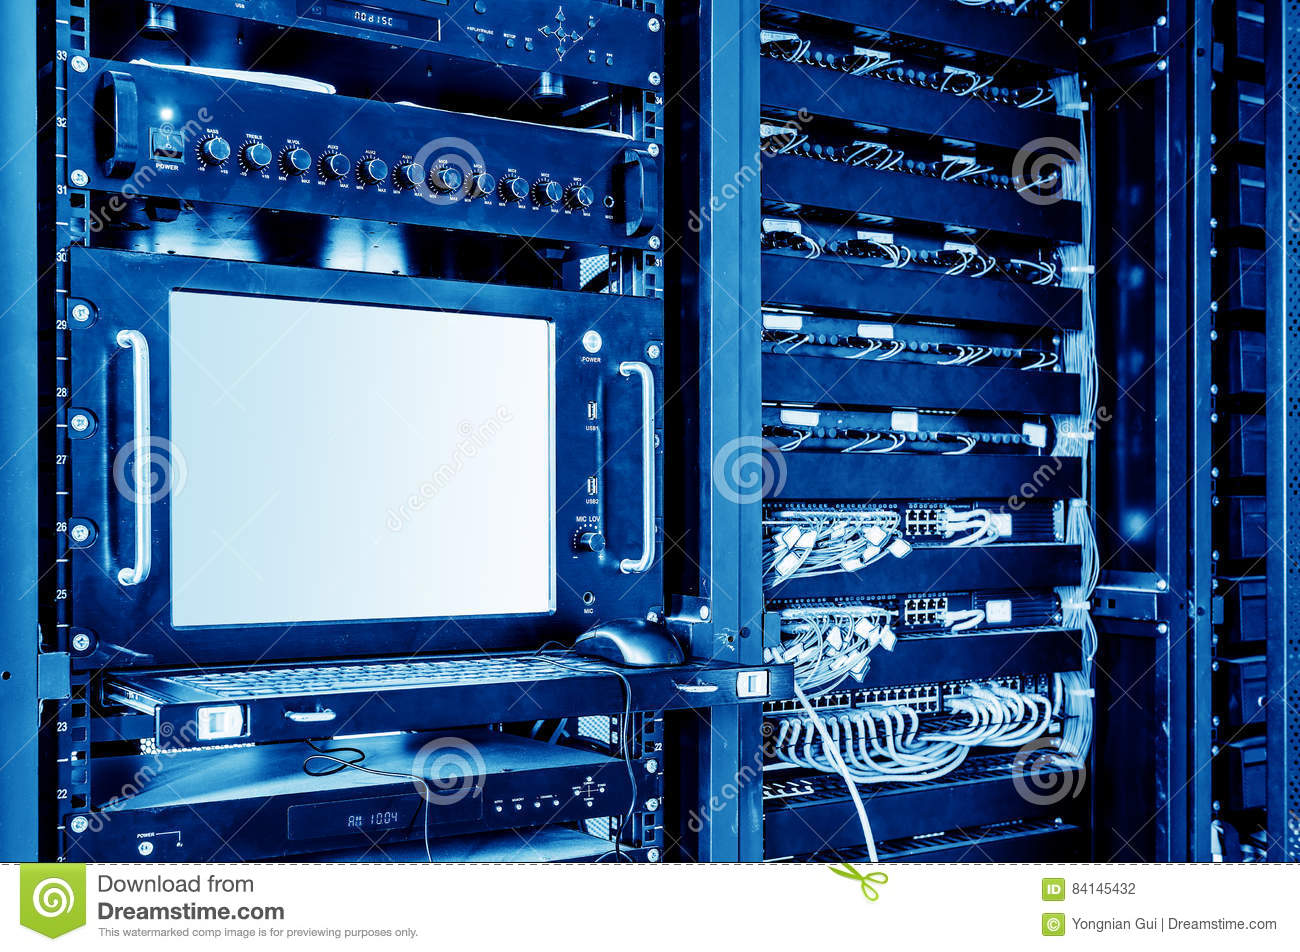 Servers and switches